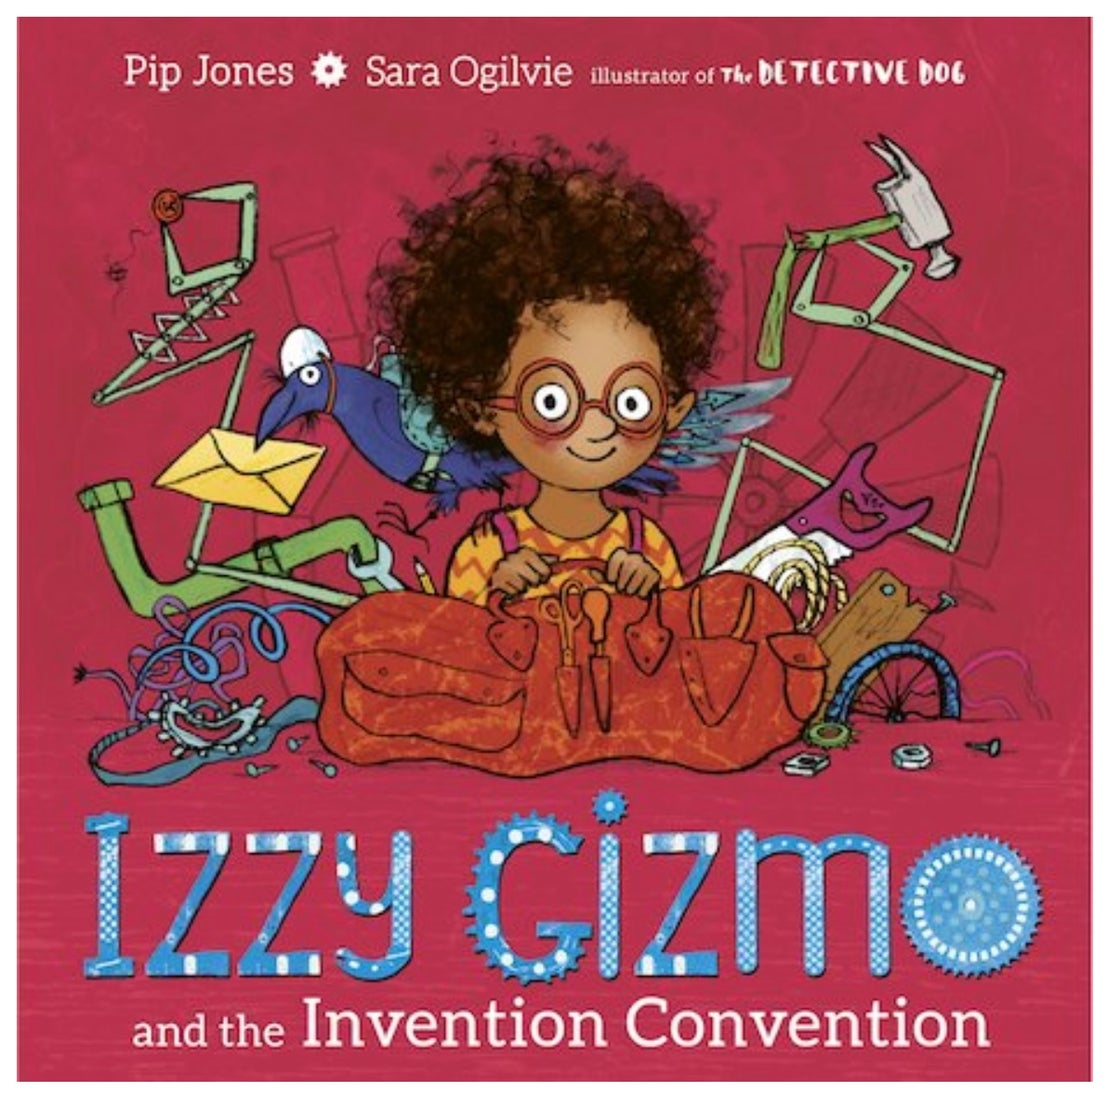 Image of Izzy Gizmo and the Invention Convention